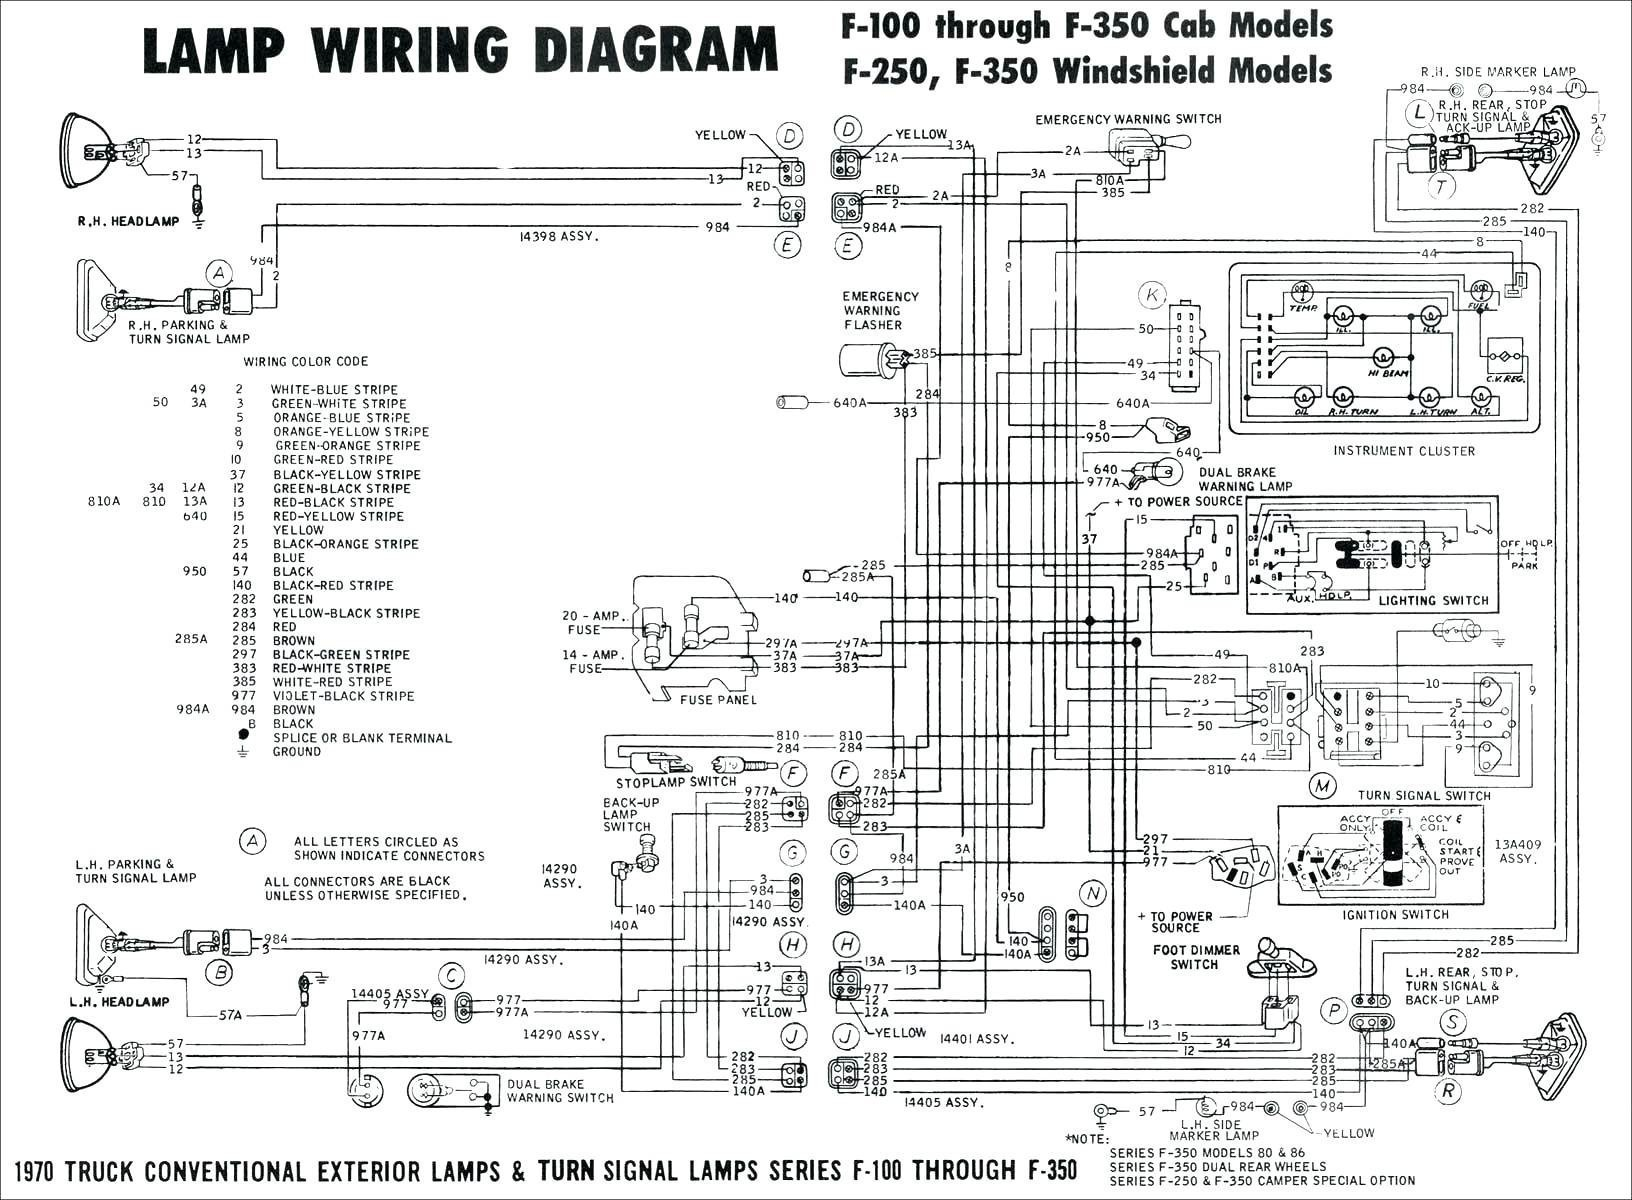 nema 6 15r wiring diagram - nema r wiring diagram on nema 6 20r adapter  extension